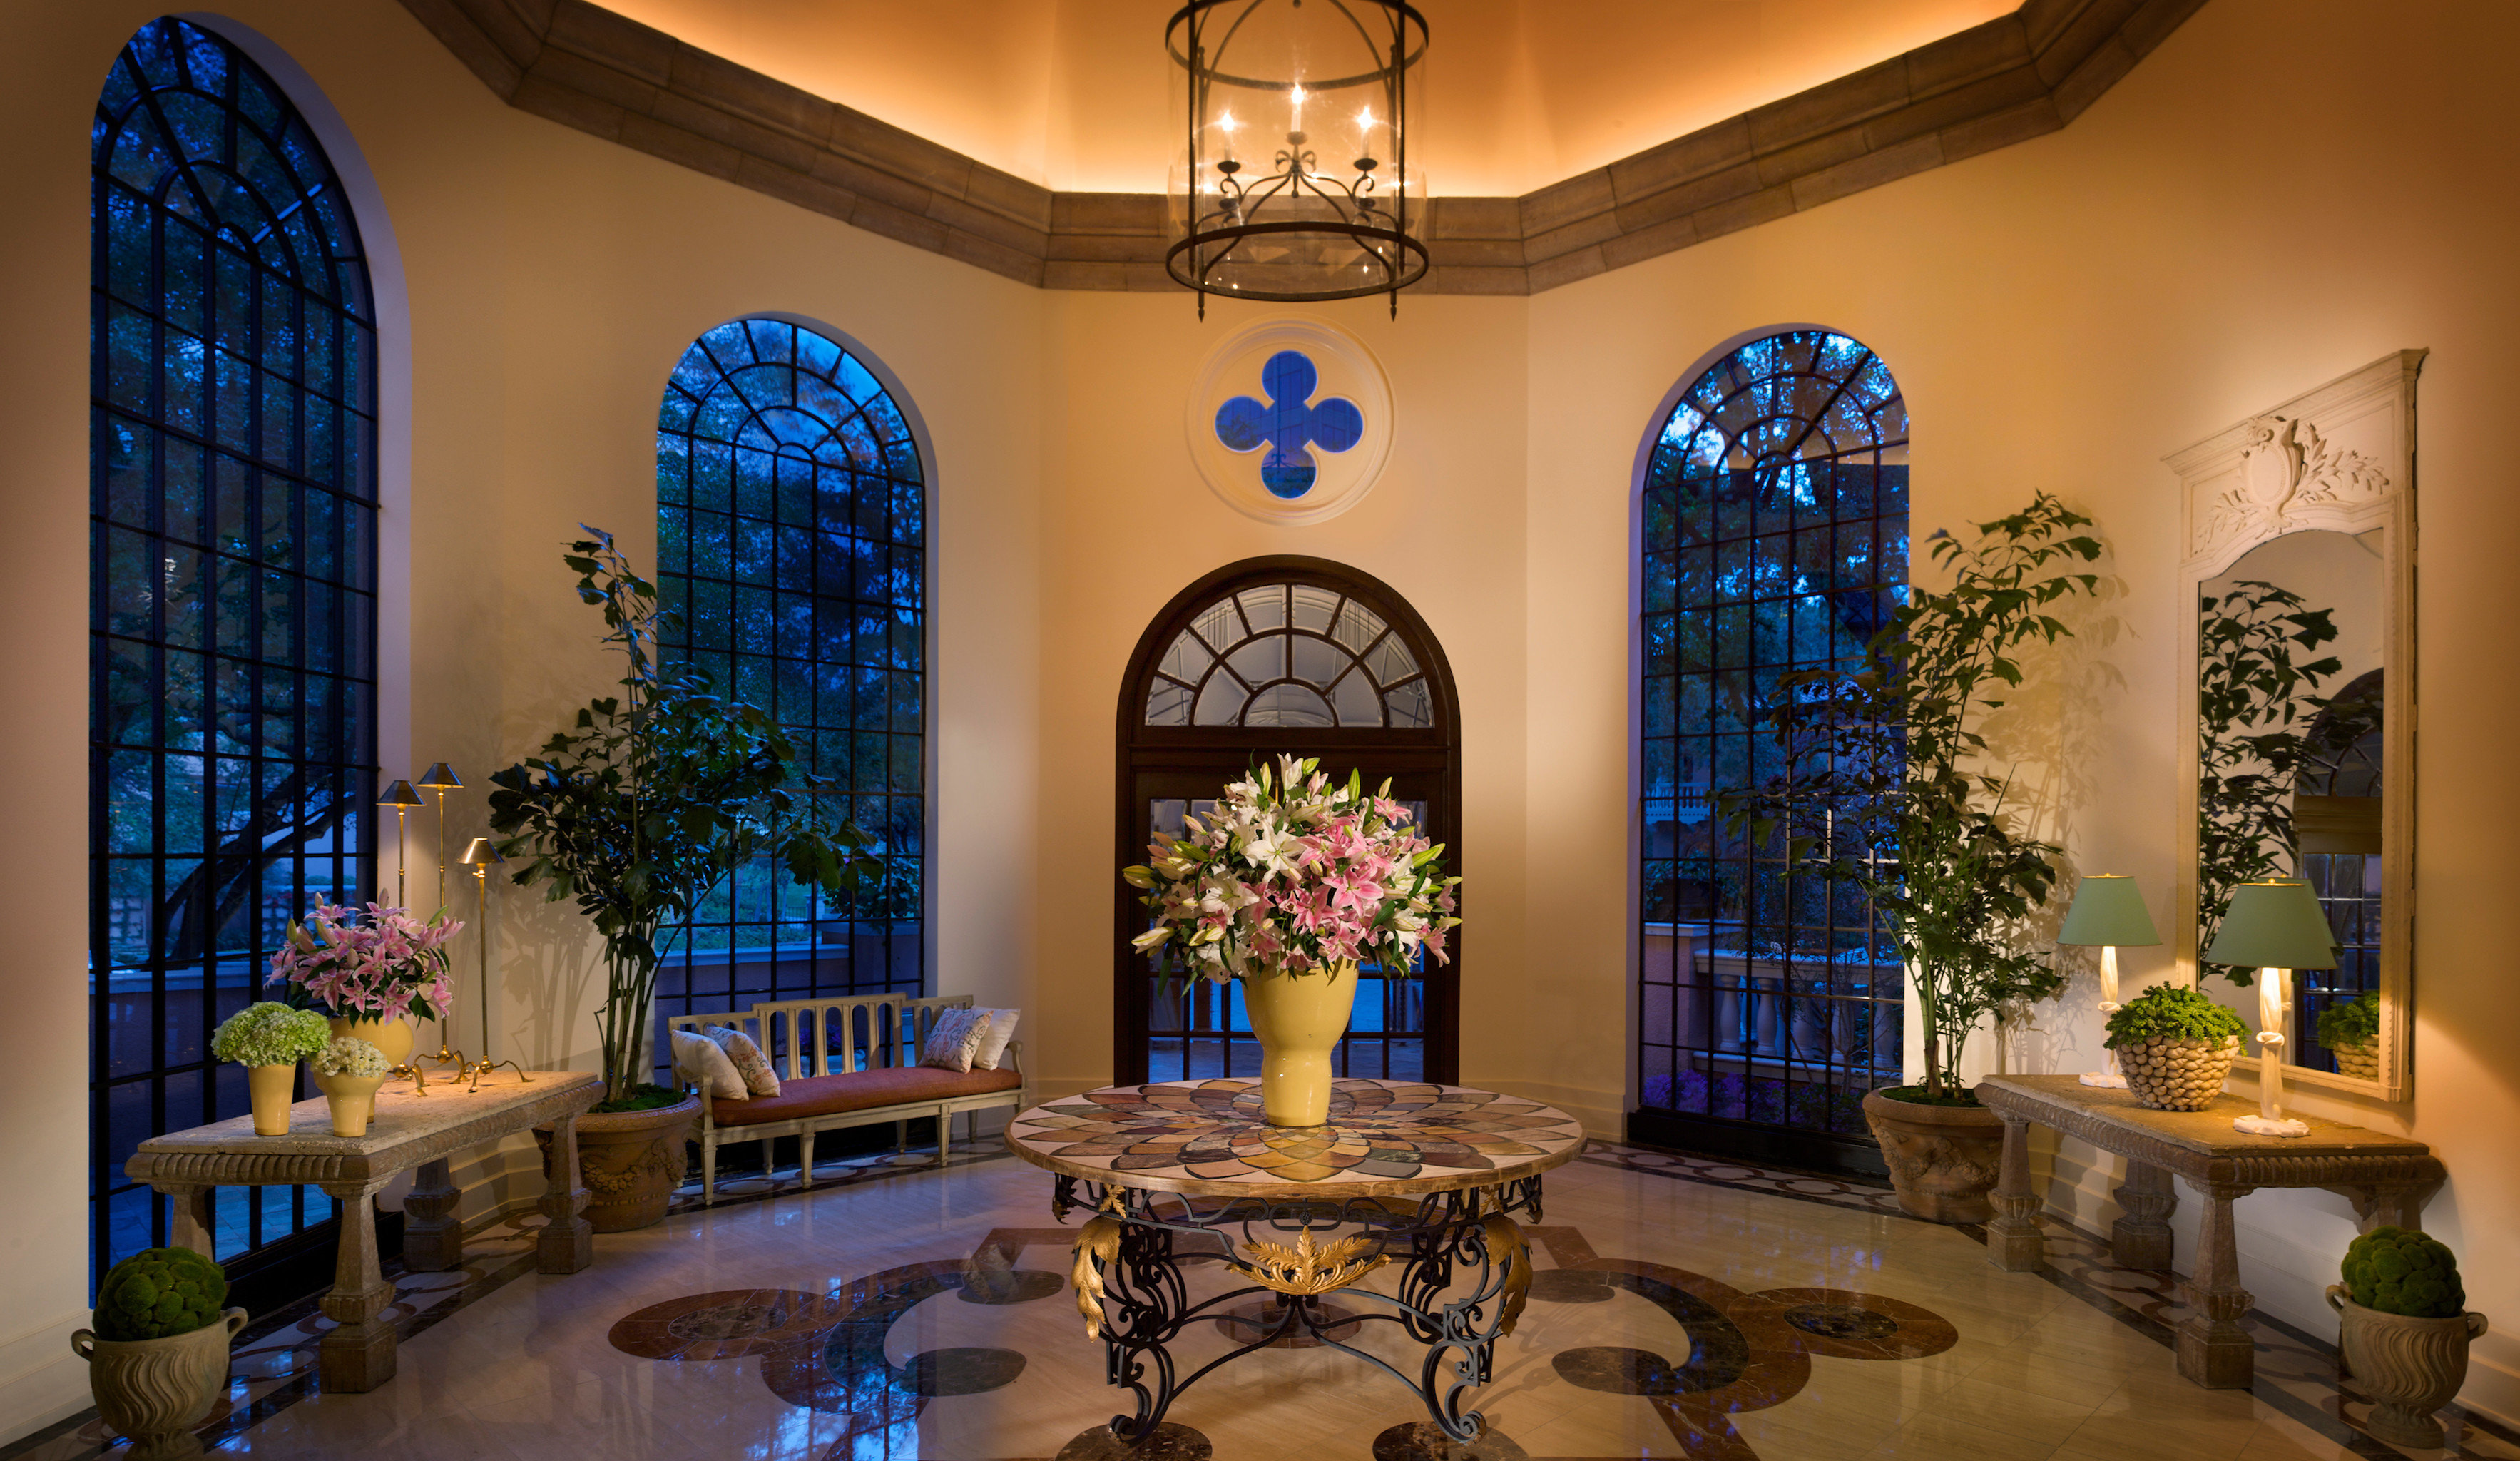 Boutique Elegant Romantic Lobby mansion home living room chapel colorful